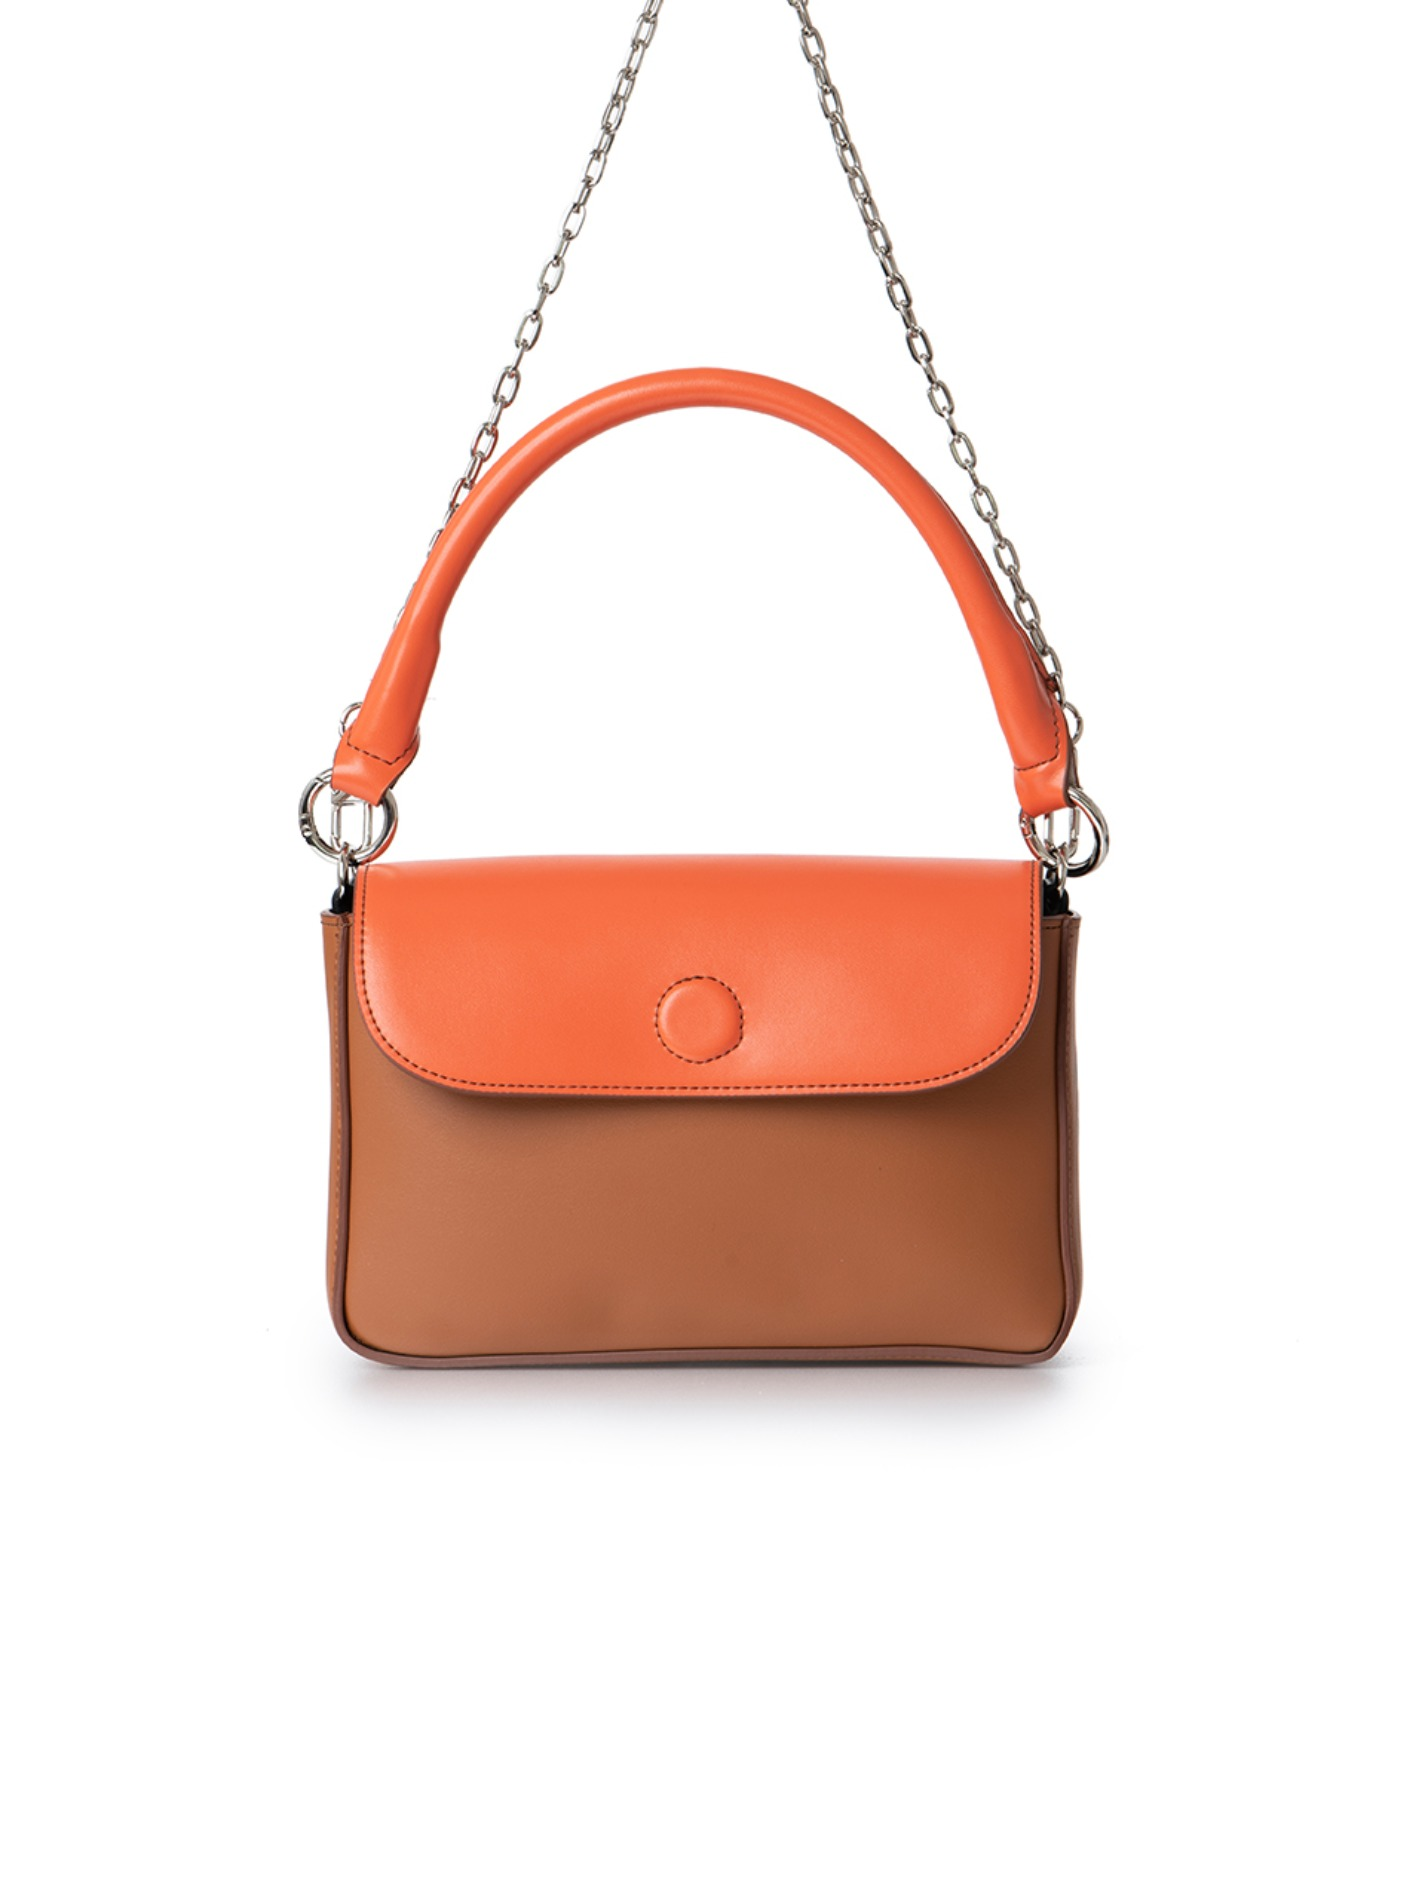 [by Atelier] NANO ROSY BAG_CAMEL